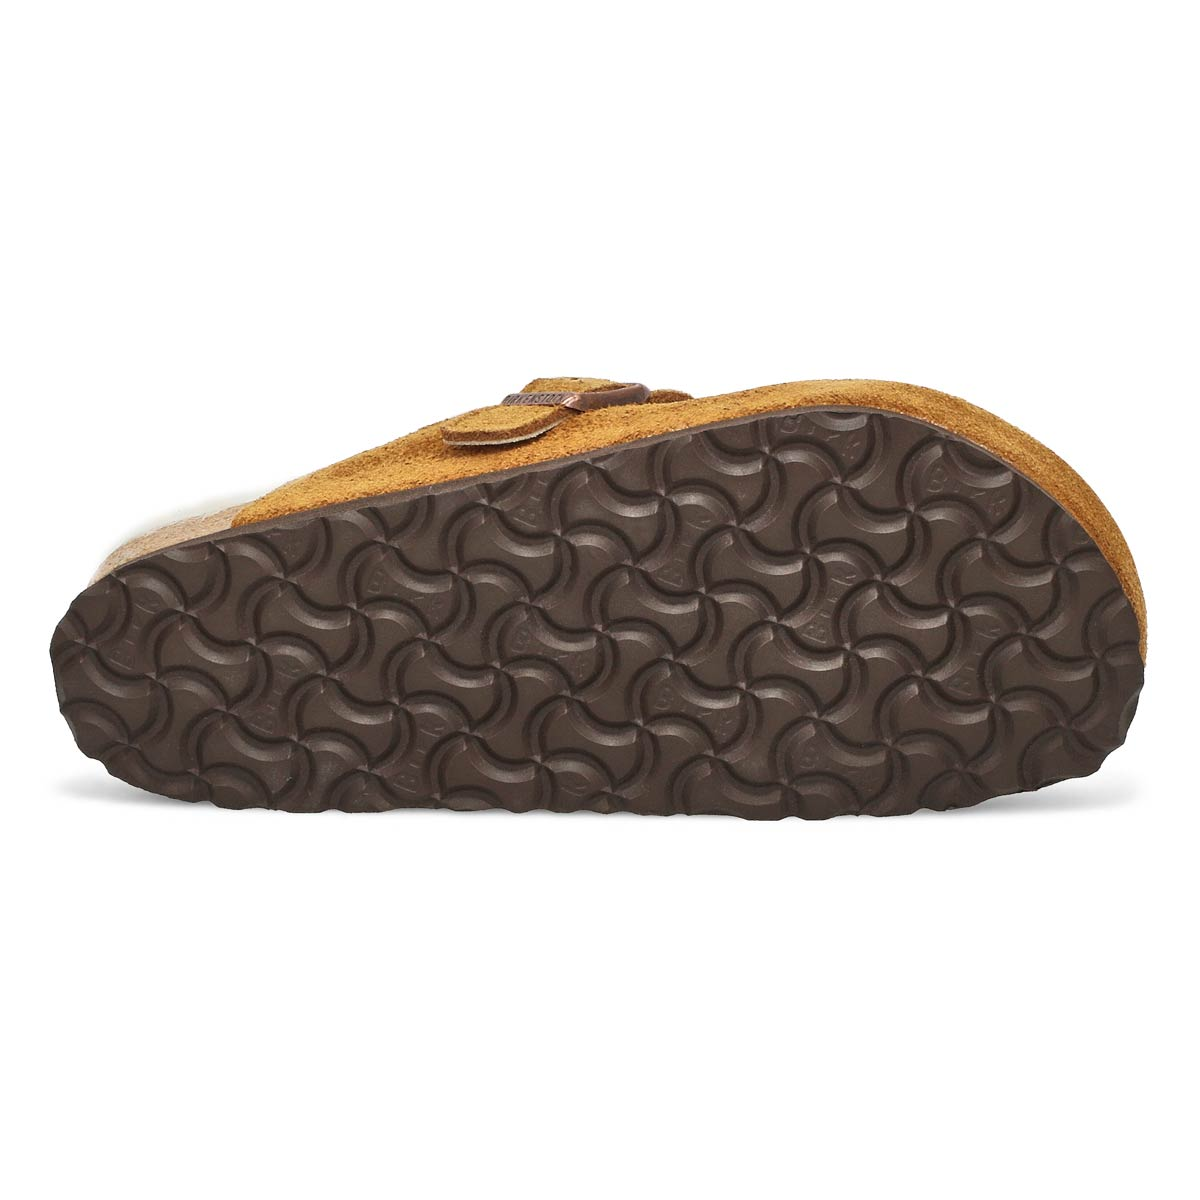 Lds Boston mink shearling lined clog